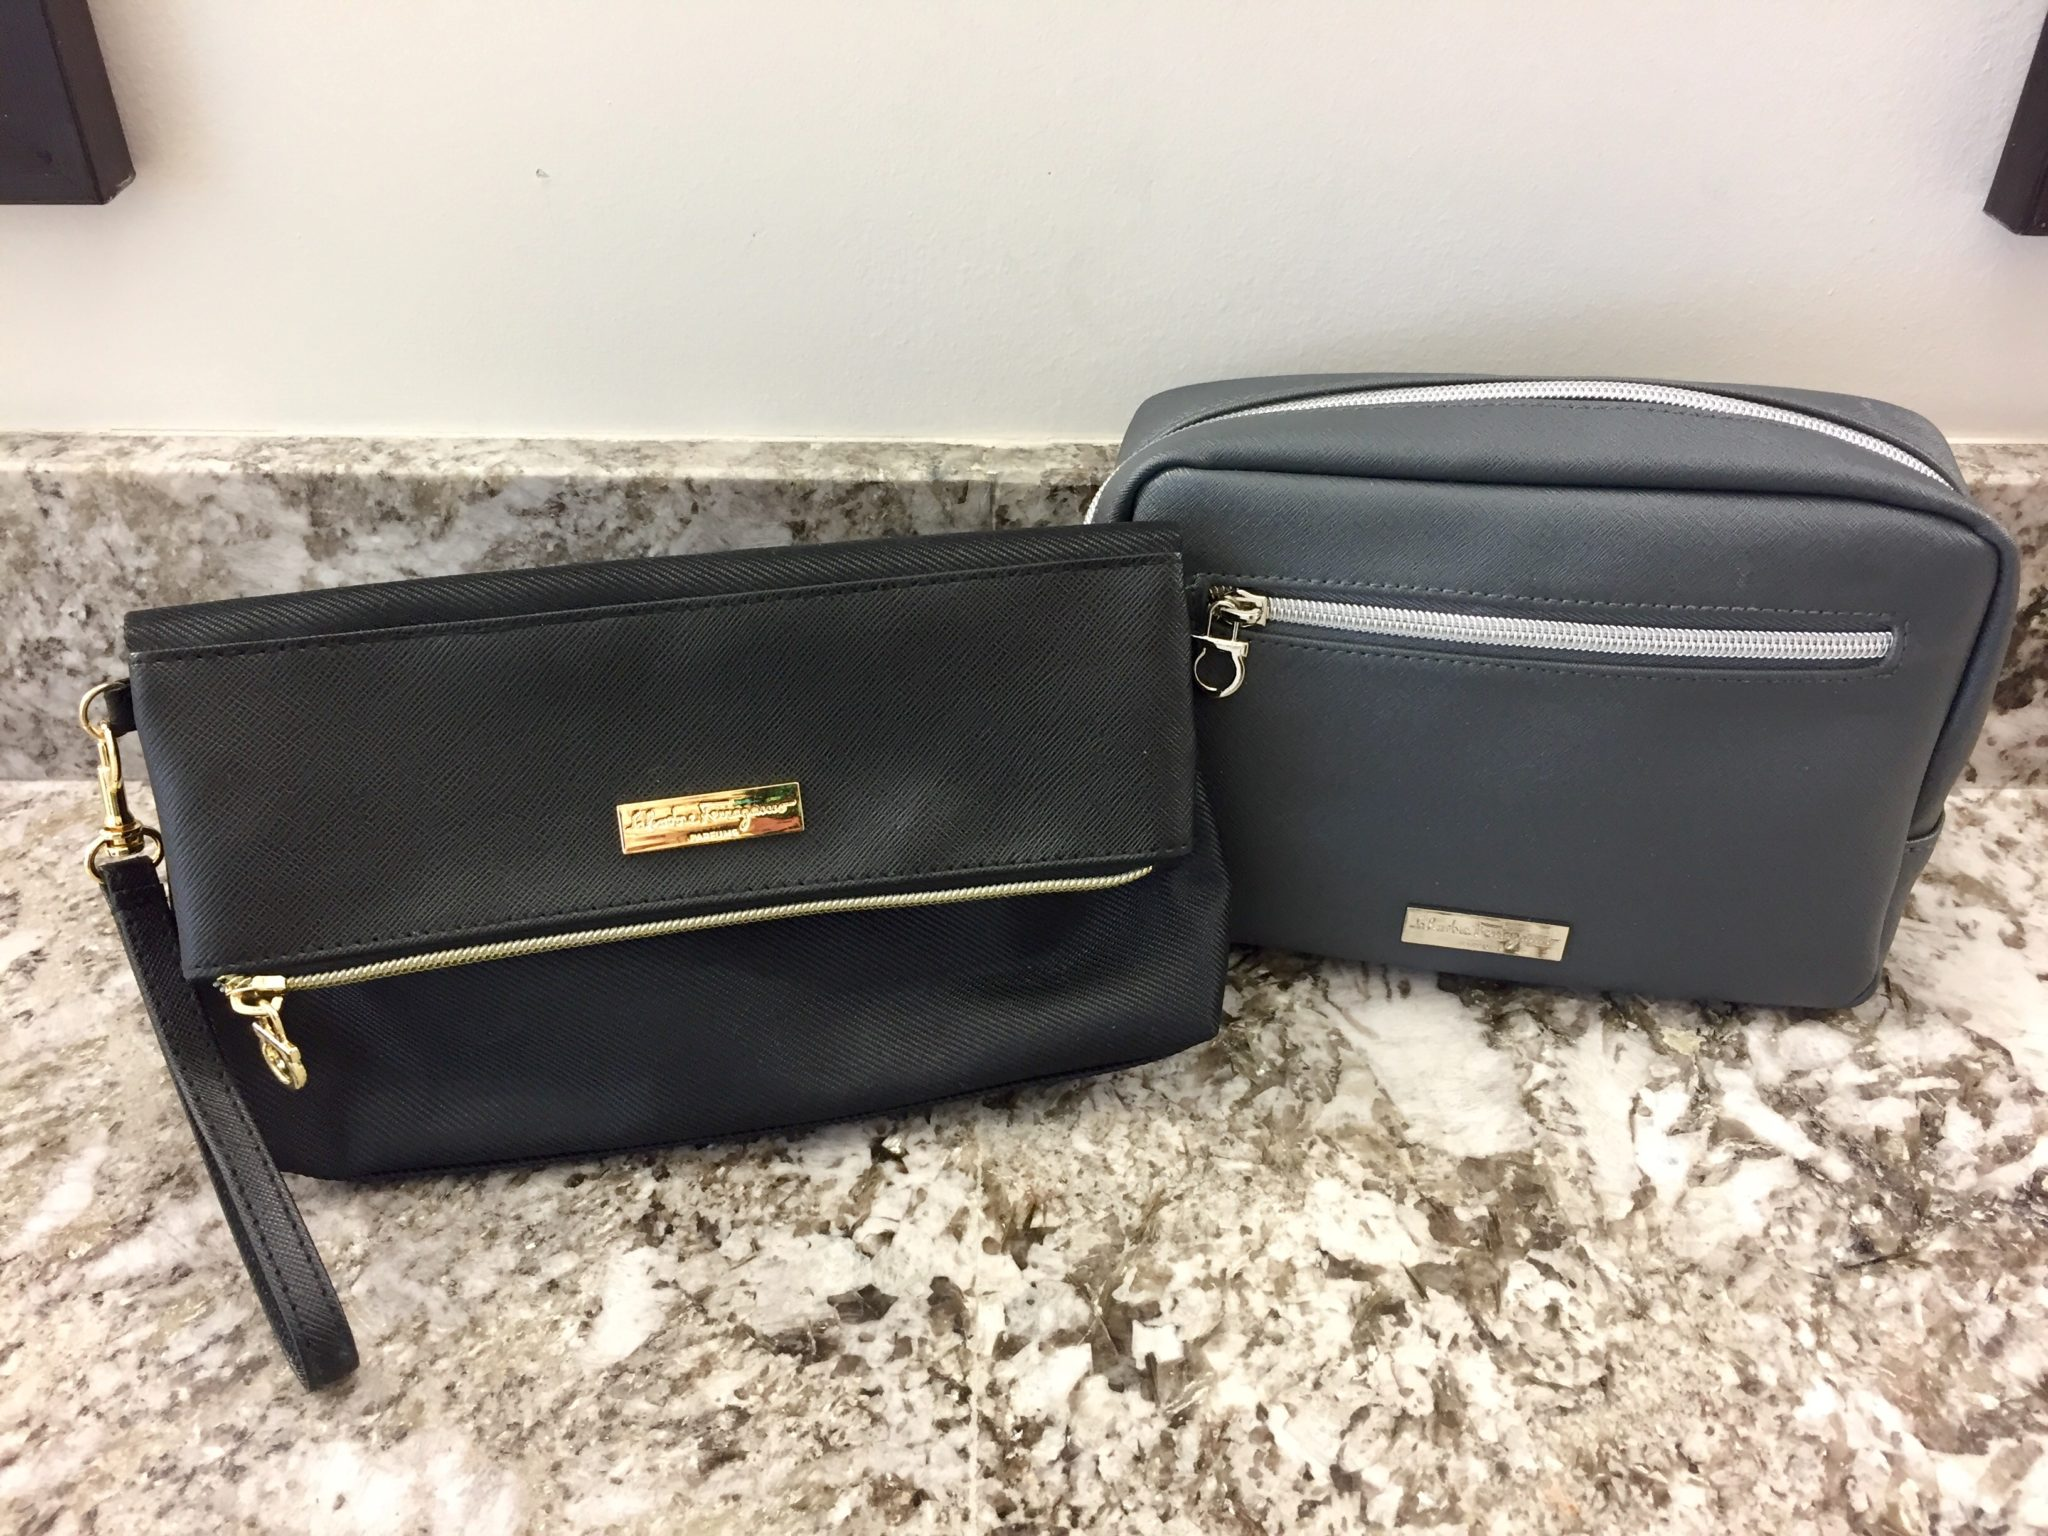 Singapore Suites First Class - Amenity Kits